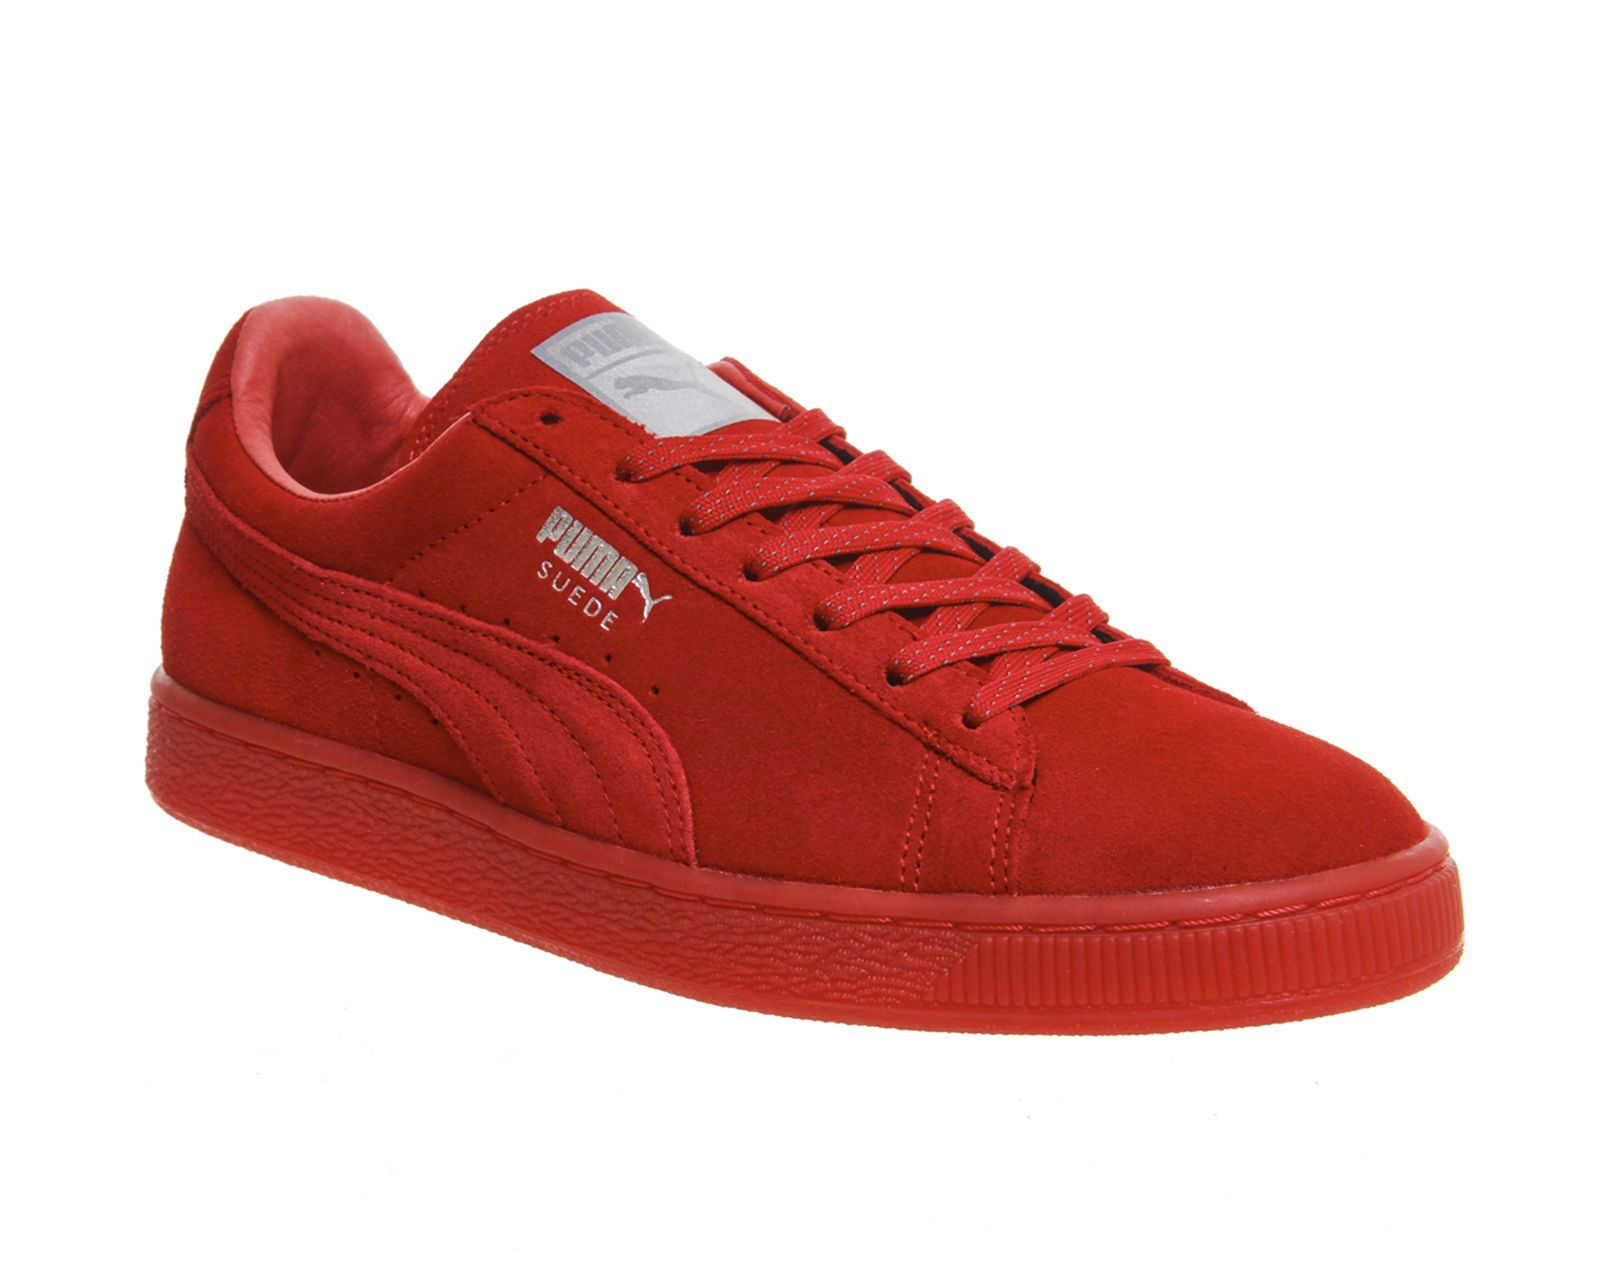 on sale b78a7 371b8 Buy Red Mono M Puma Suede Classic from OFFICE.co.uk. | Shoes ...